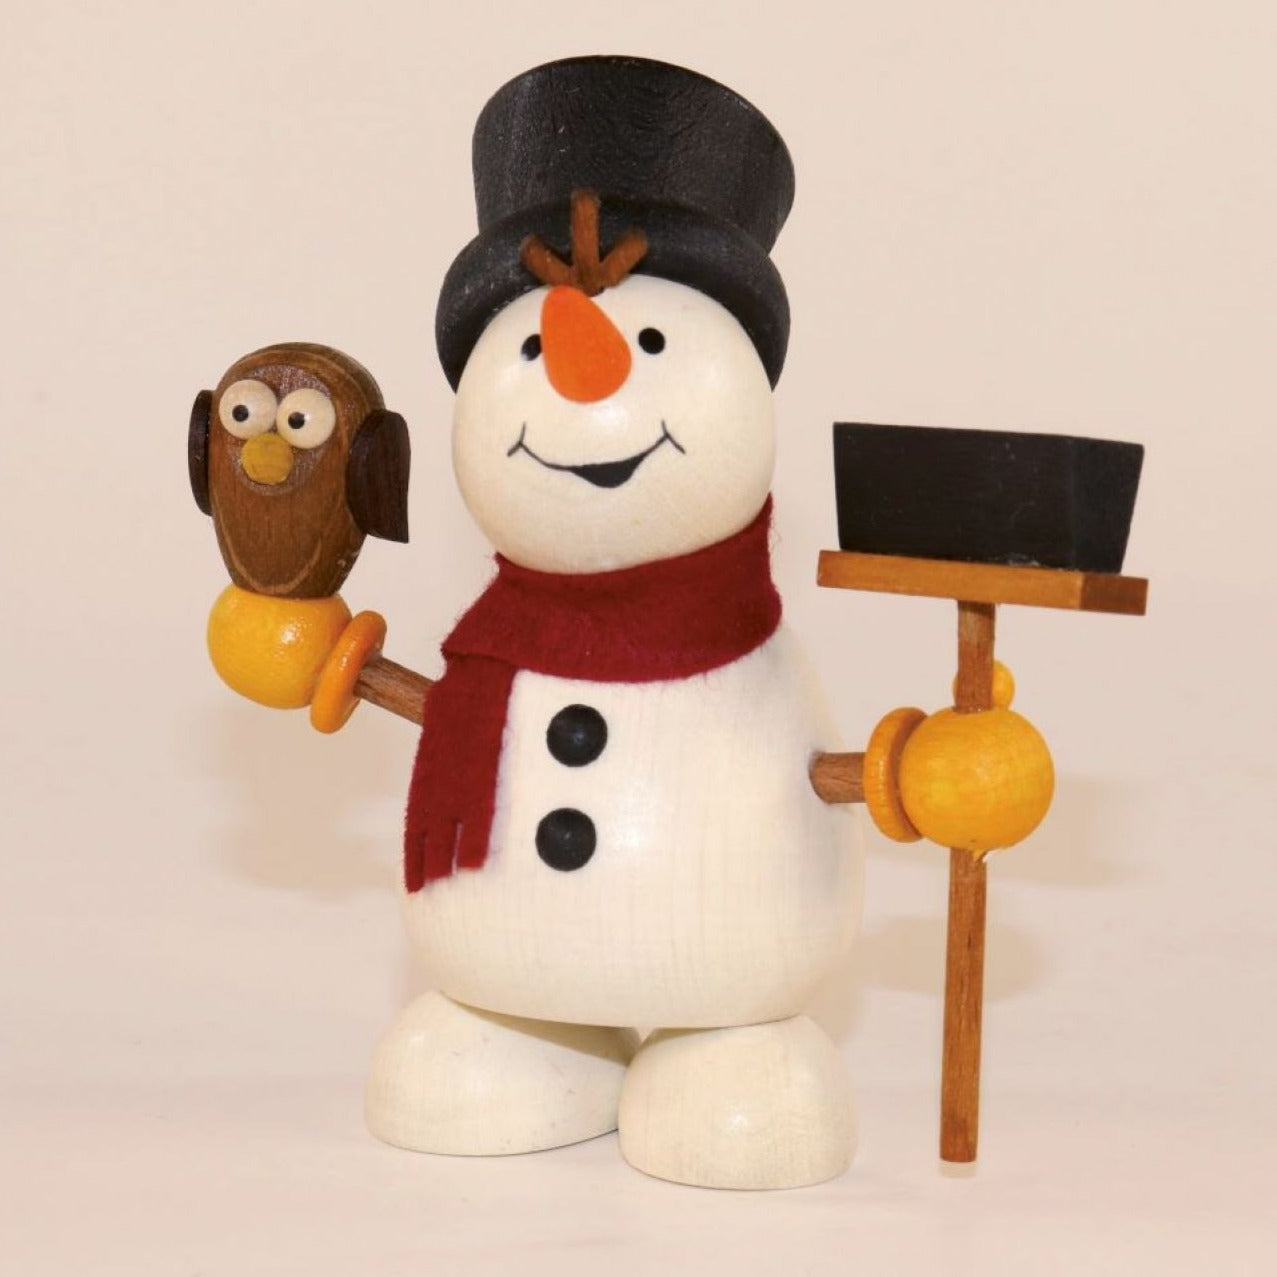 Weihnachtsmann Collectibles - Large Snowman with Owl and Broom